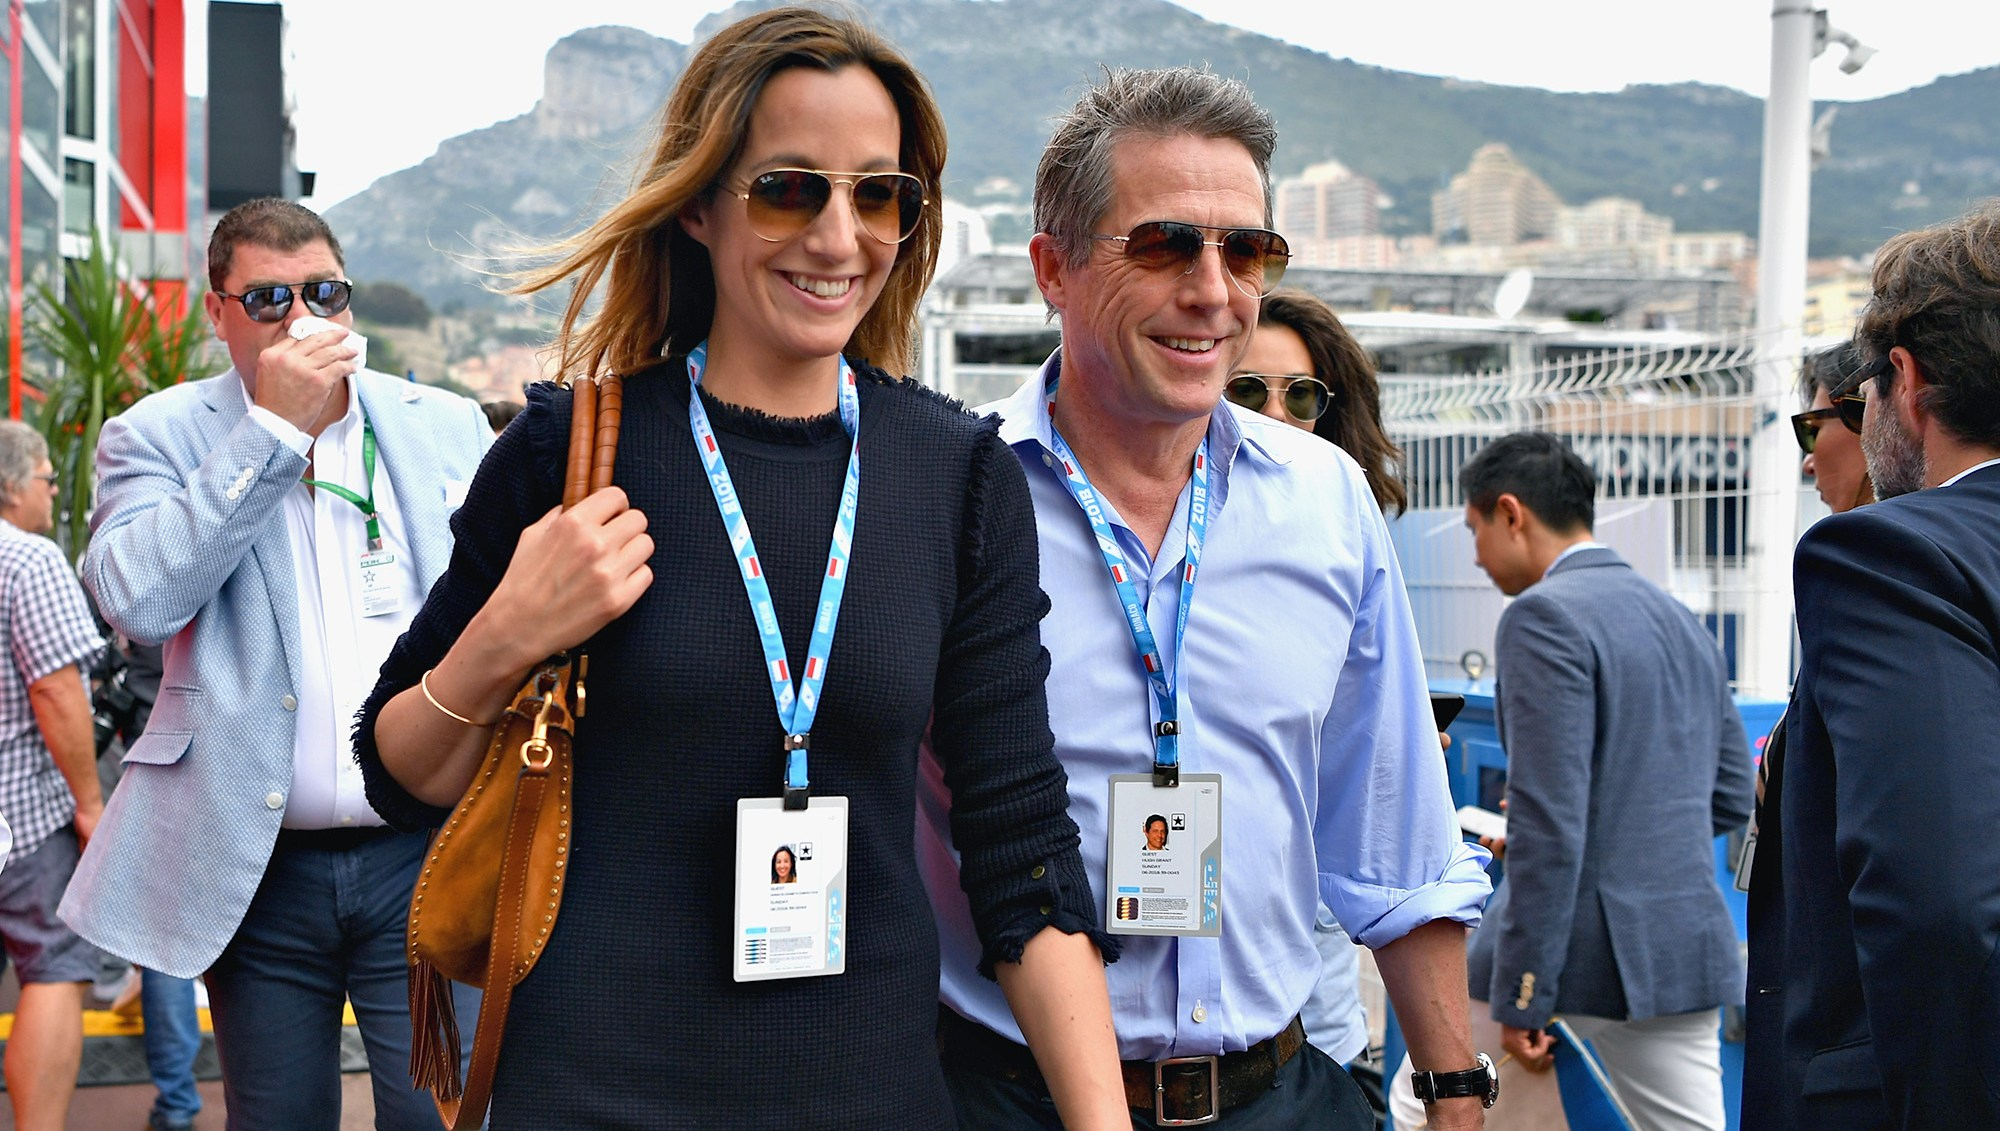 Hugh Grant, Anna Eberstein, Wedding, Married, Monaco Formula One Grand Prix